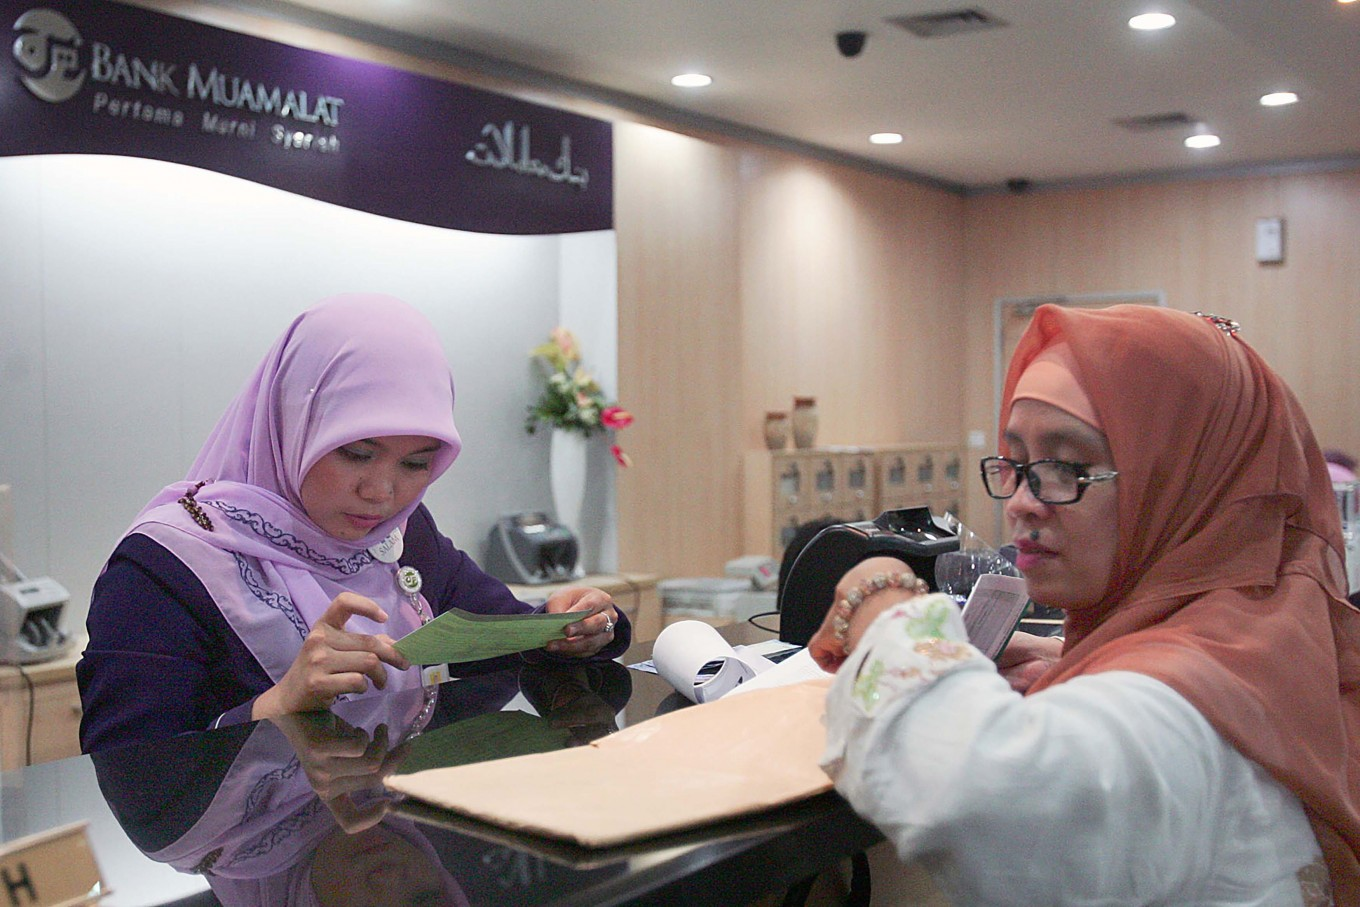 Challenges of sharia banking in Indonesia